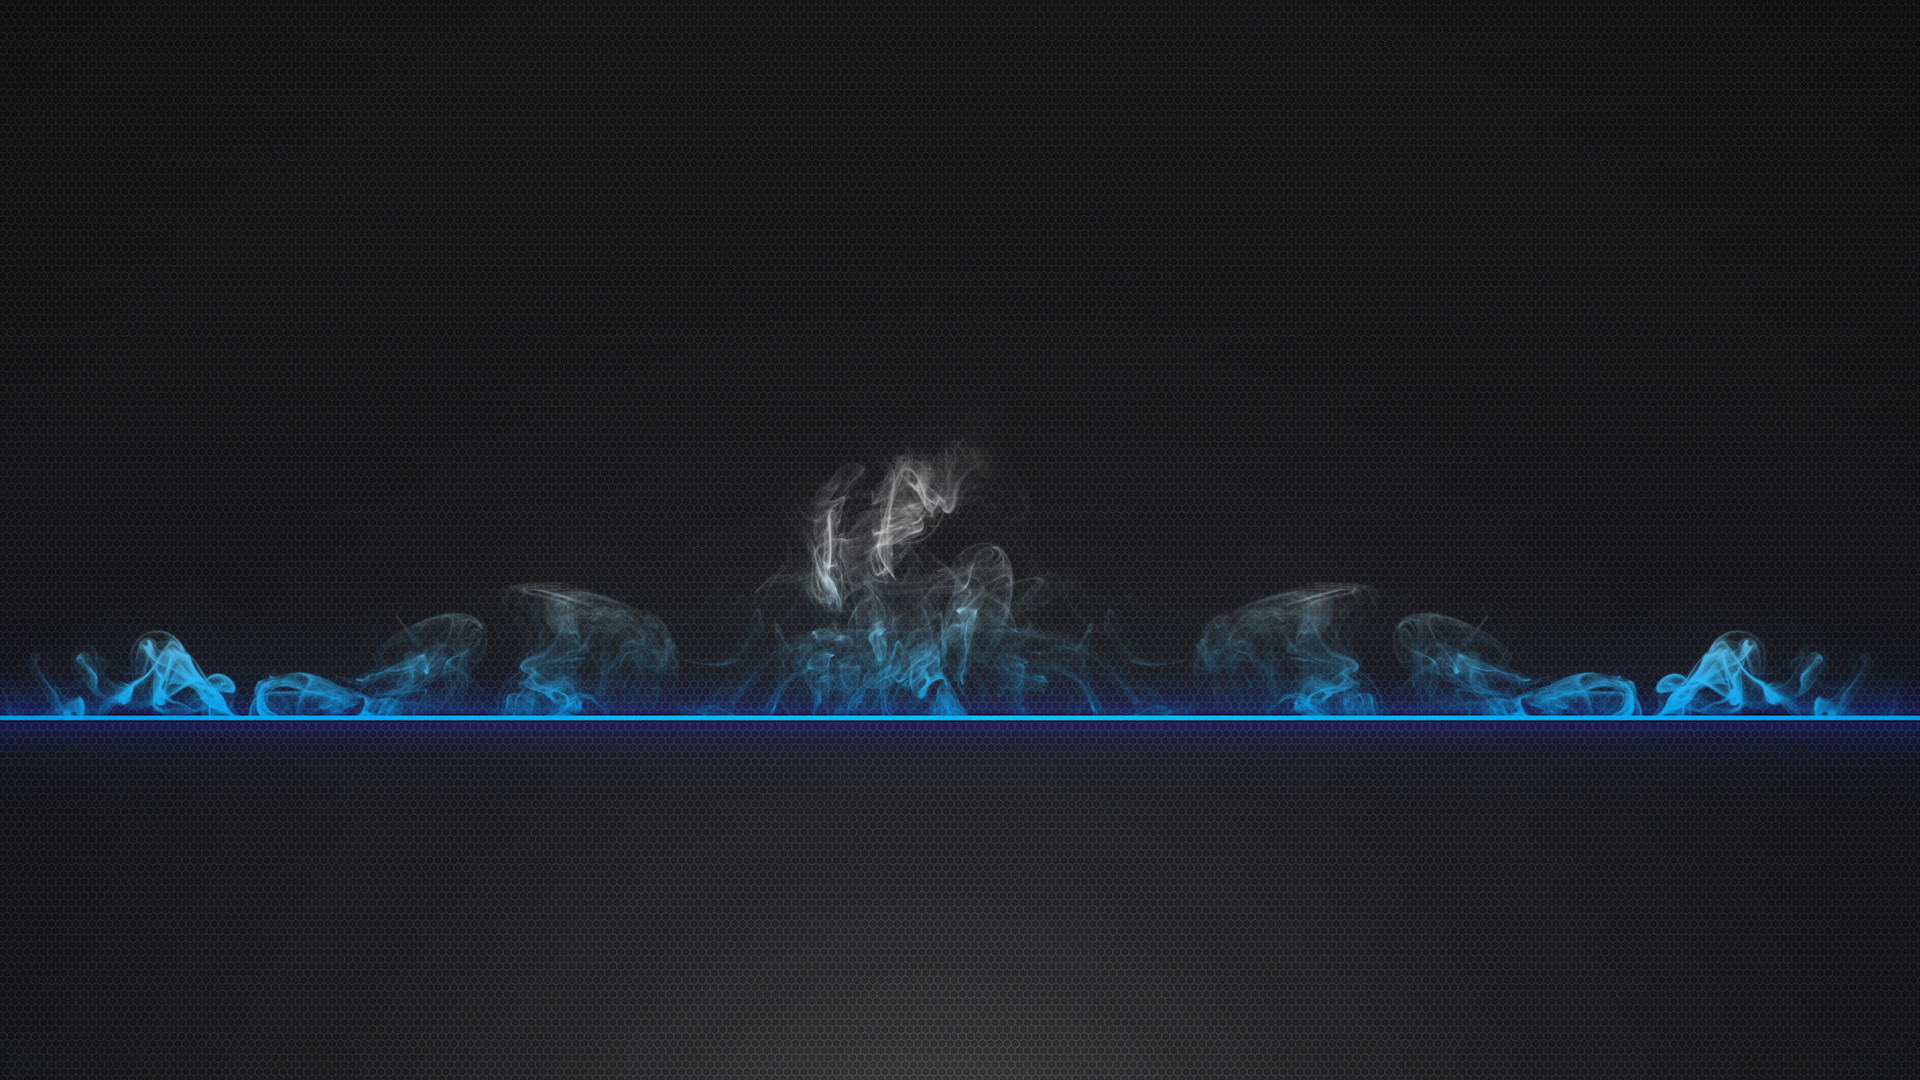 1920x1080 wallpaper.wiki-3D-abstract-wallpaper-free-download-PIC-